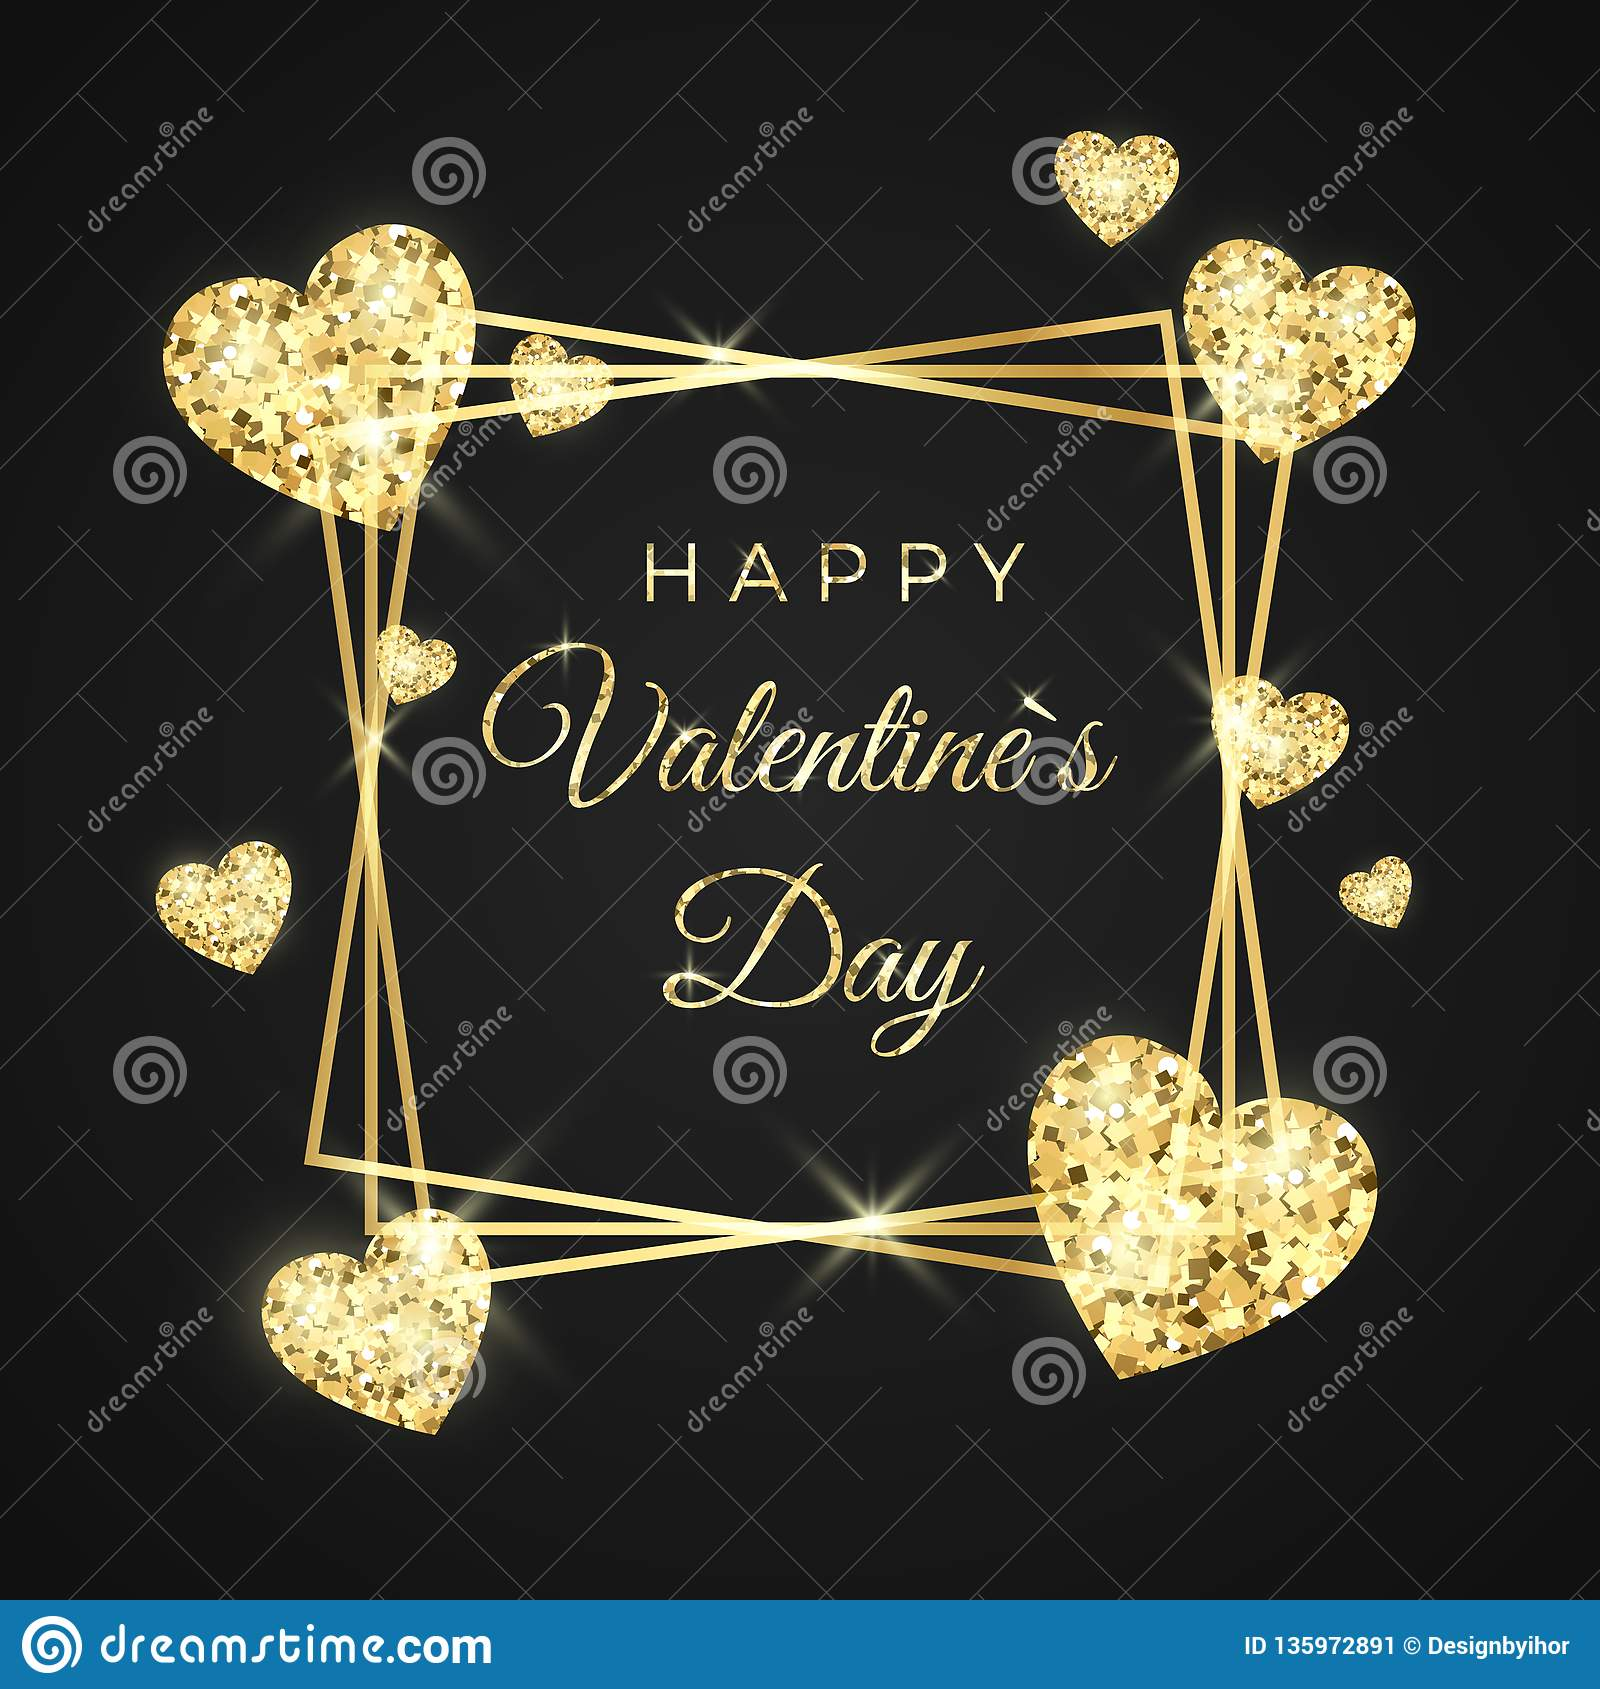 Happy Valentines day vector greeting card. Golden frame, heart and text on black background. Gold holiday banner.